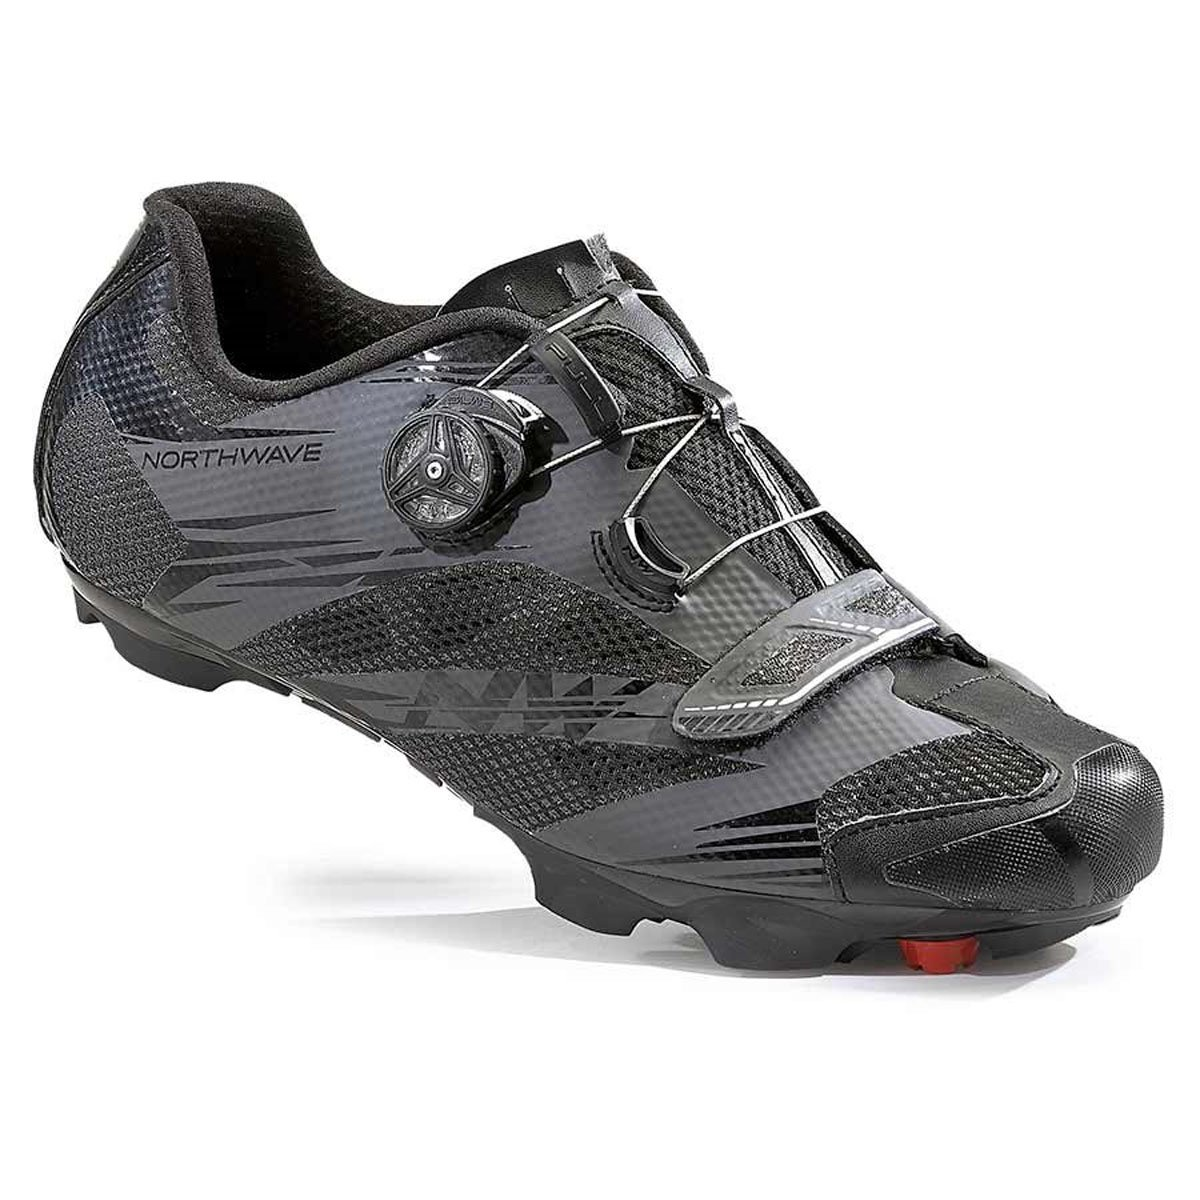 Northwave Man MTB XC Shoes Scorpius 2 Plus Wide Black/Anthracite Grey B01LYCLH0M 7 US